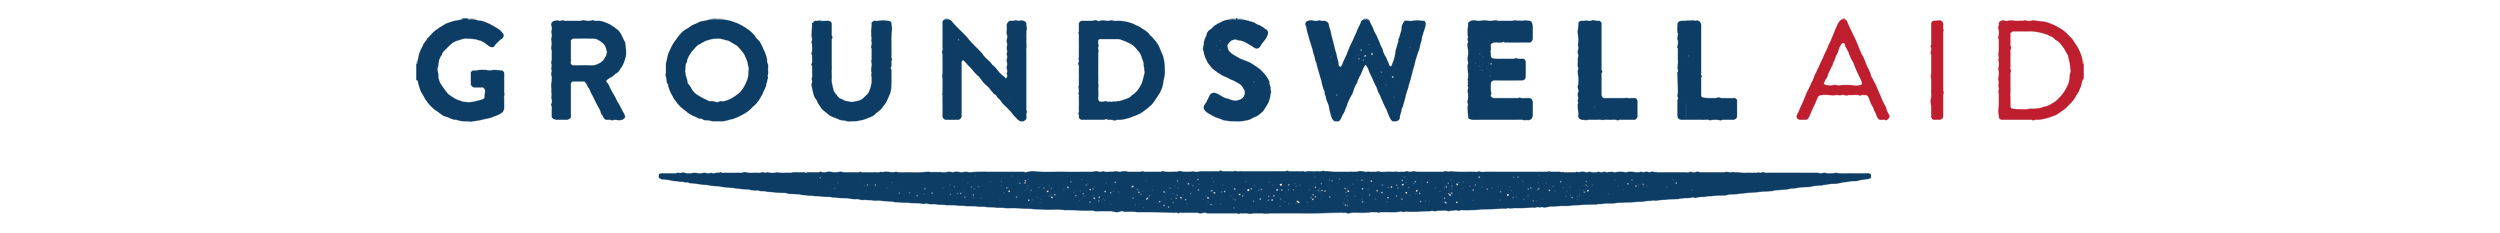 Groundswell_Logo_Text_Web.png